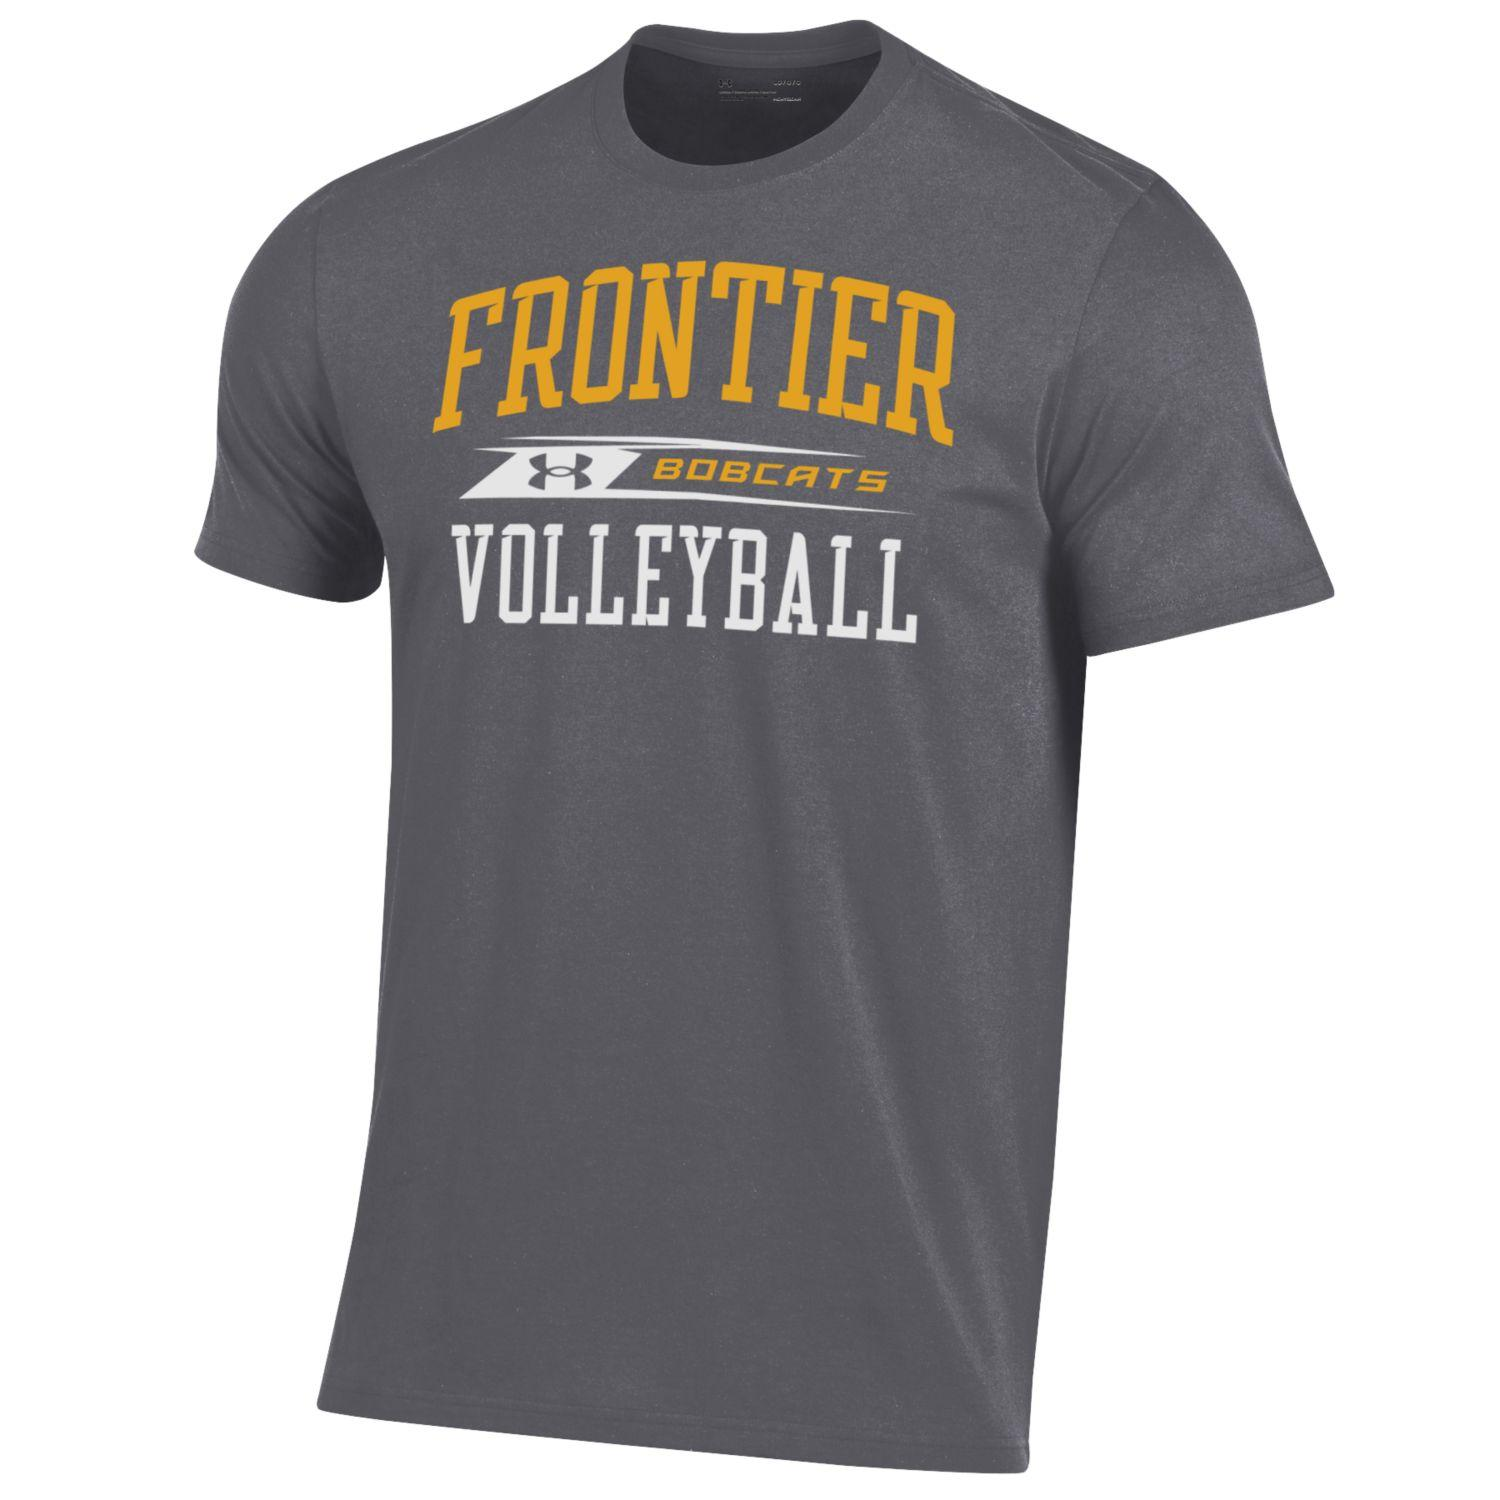 Image For UA FRONTIER VOLLEYBALL